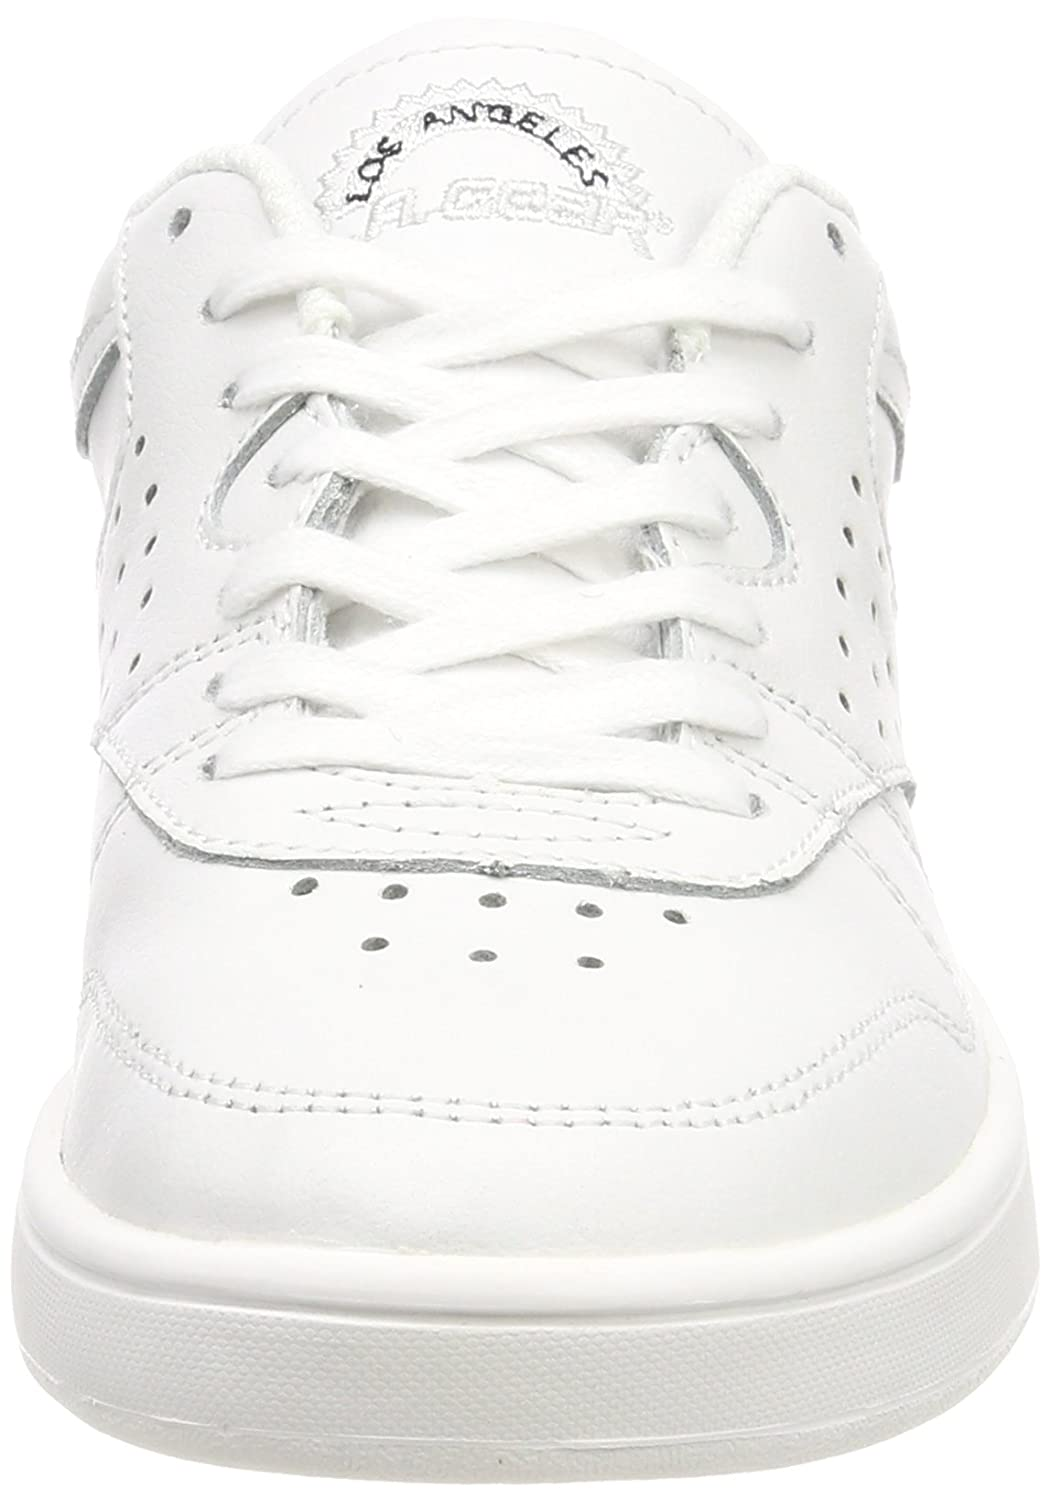 Wht-Soft Verginia Leather 03 White Gear Womens Lily Trainers L.A 5 UK